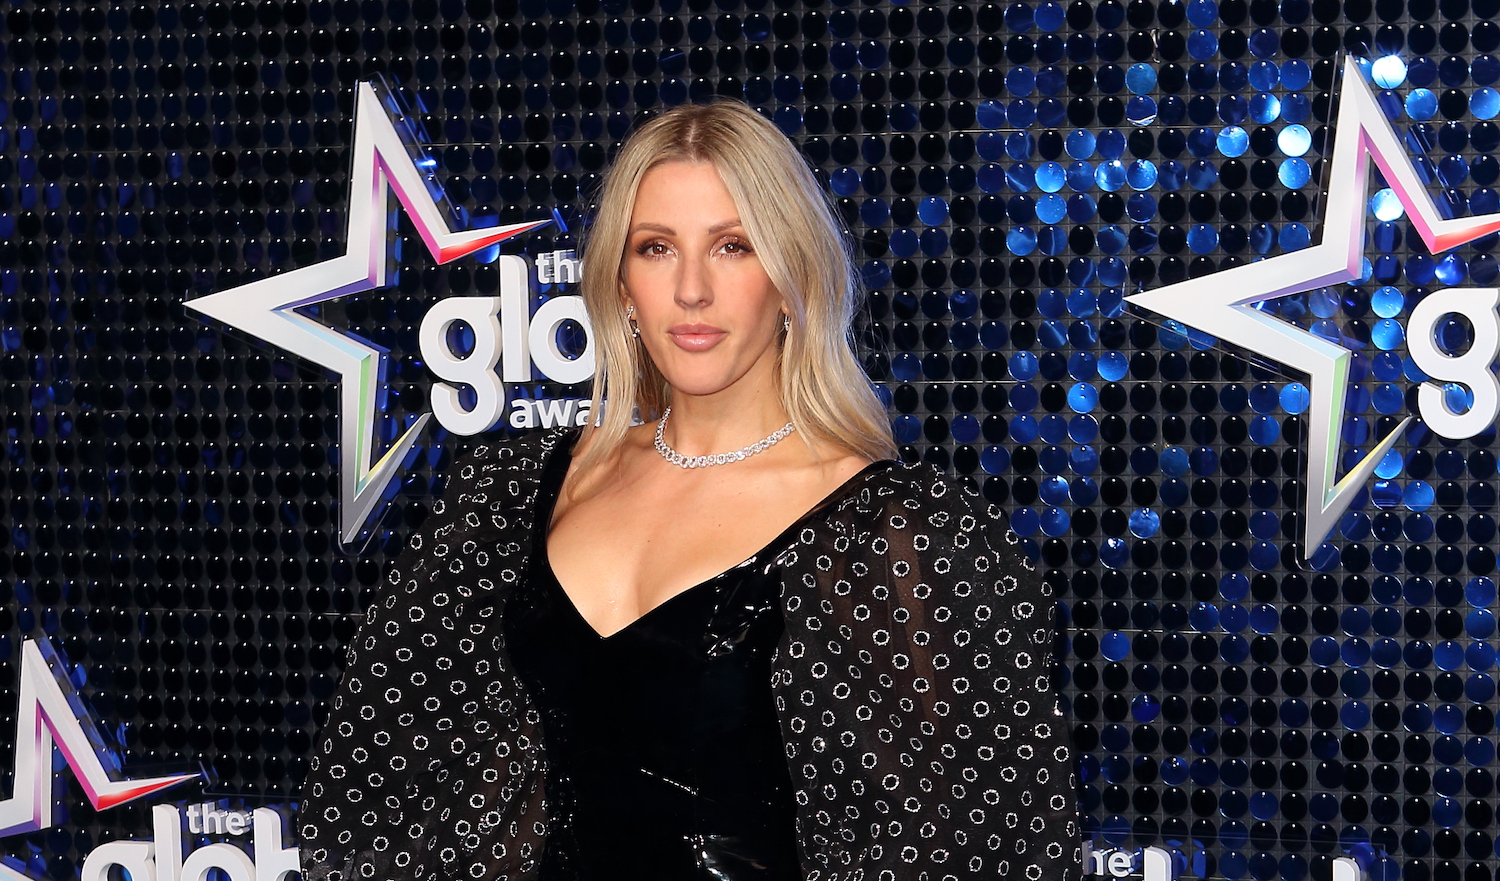 Pop star Ellie Goulding claims fasting for 40-hours is